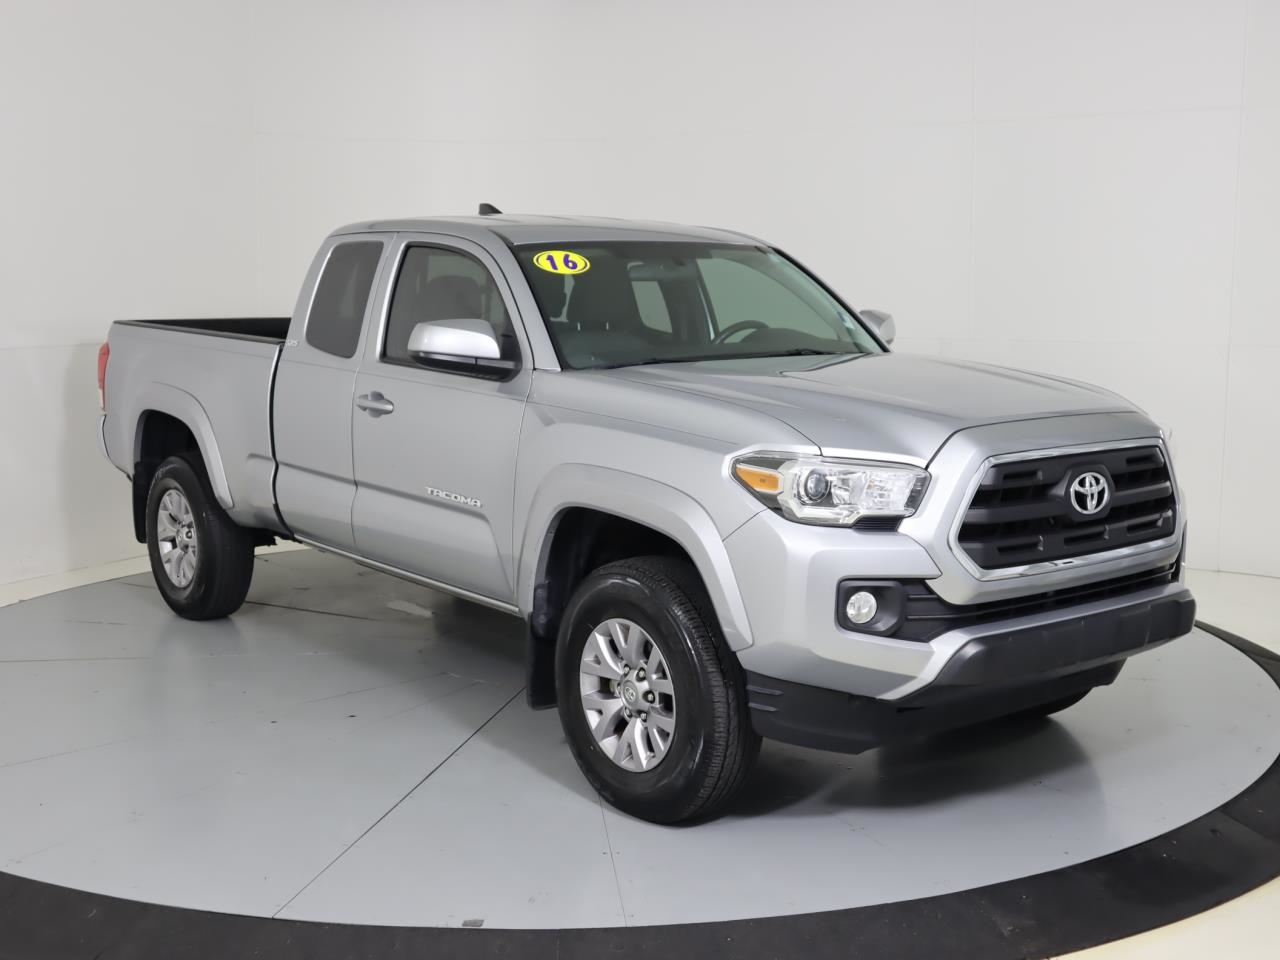 2016 TOYOTA TACOMA 2WD Access Cab I4 AT SR5 0 miles 2 12V DC Power Outlets 4 Person Seating Cap